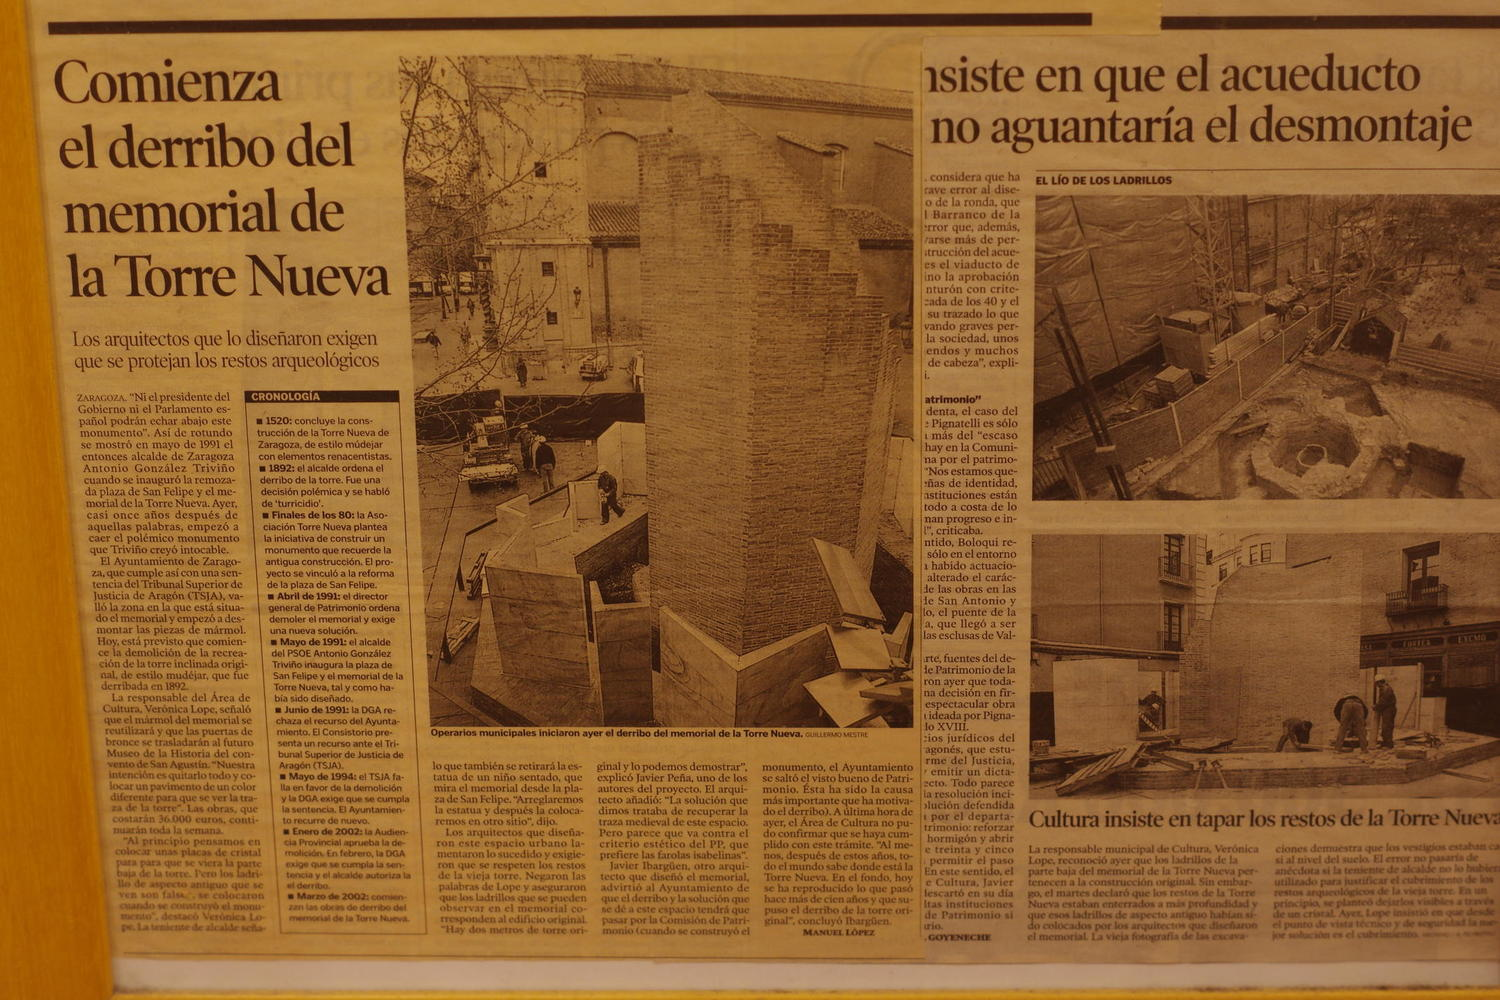 Newspaper reports detailing the removal of the monument in 2002